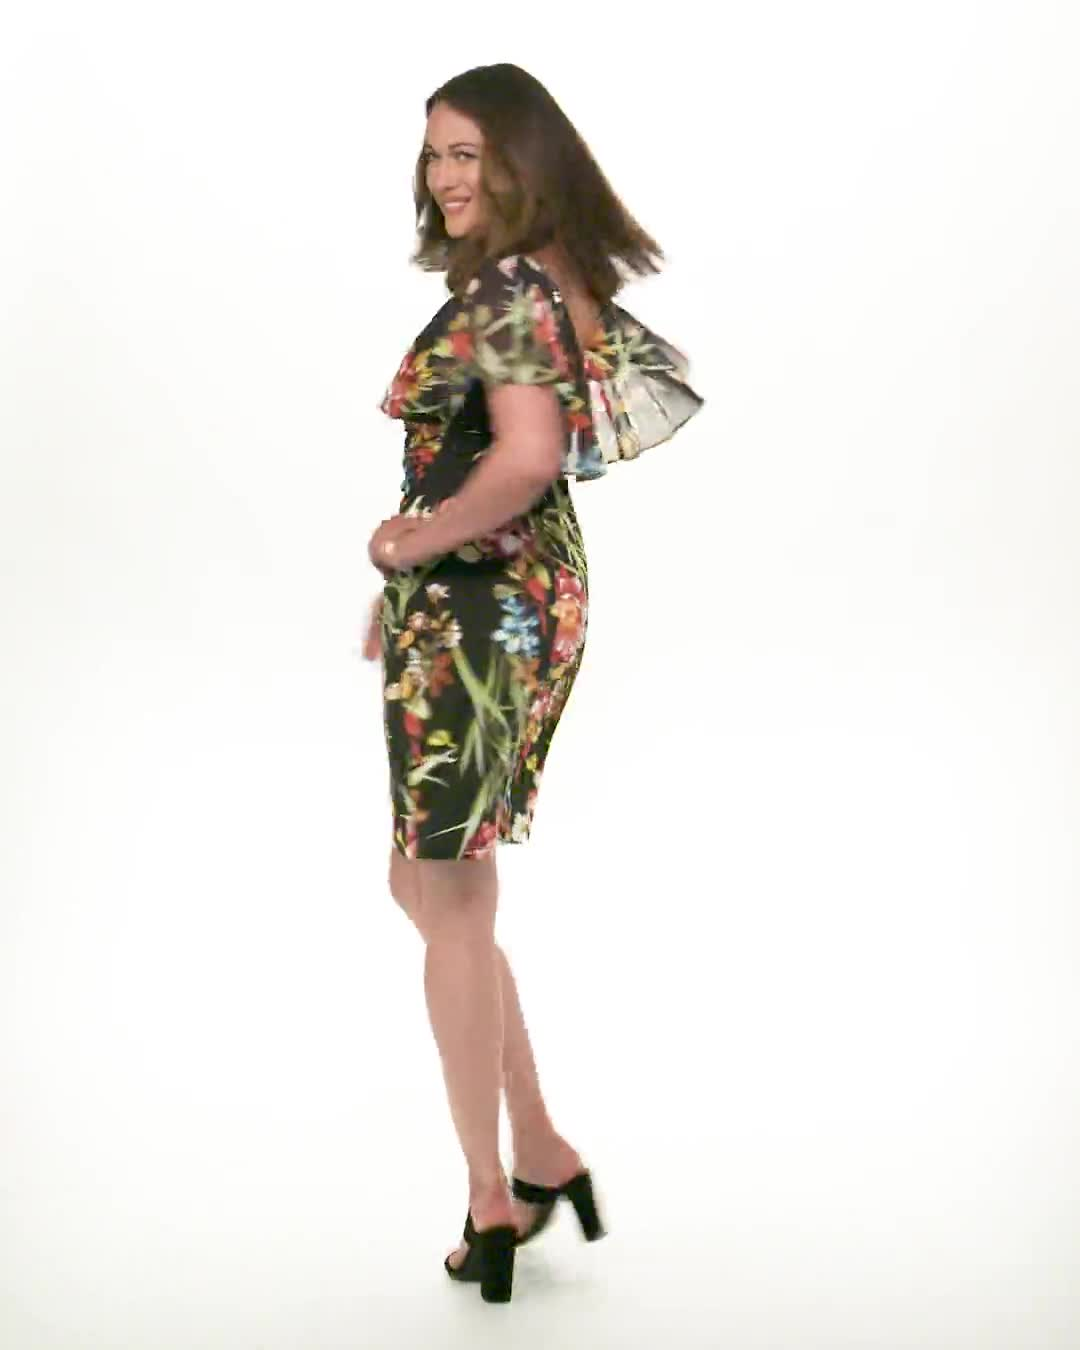 Amy  Floral Dress - Video